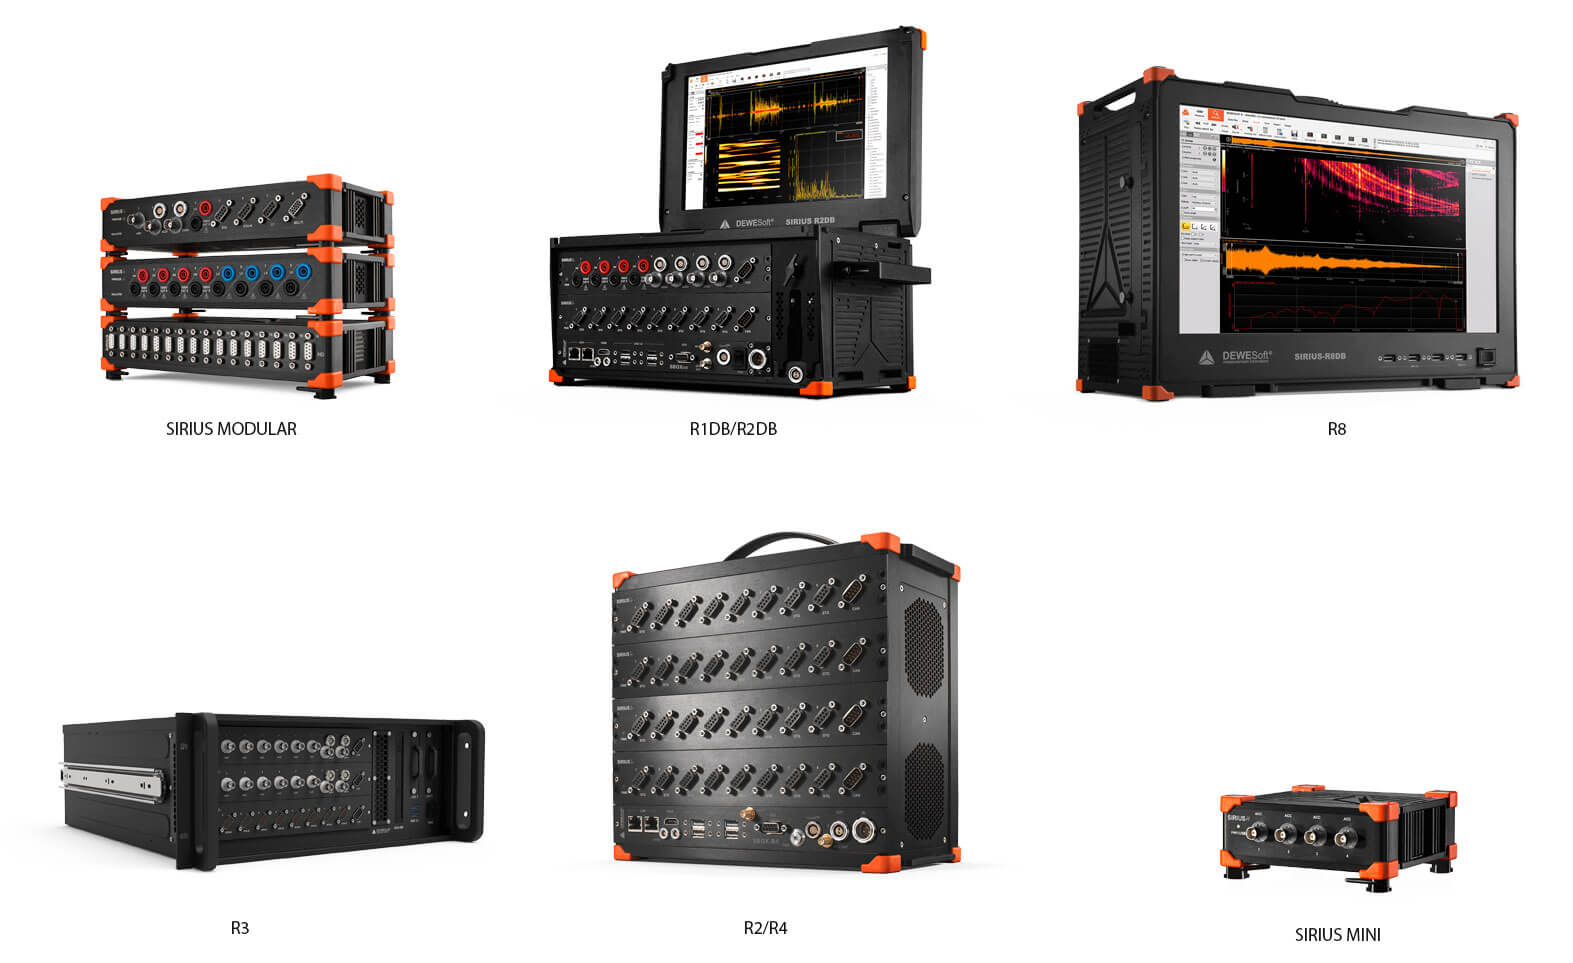 SIRIUS family data acquisition systems in different forms